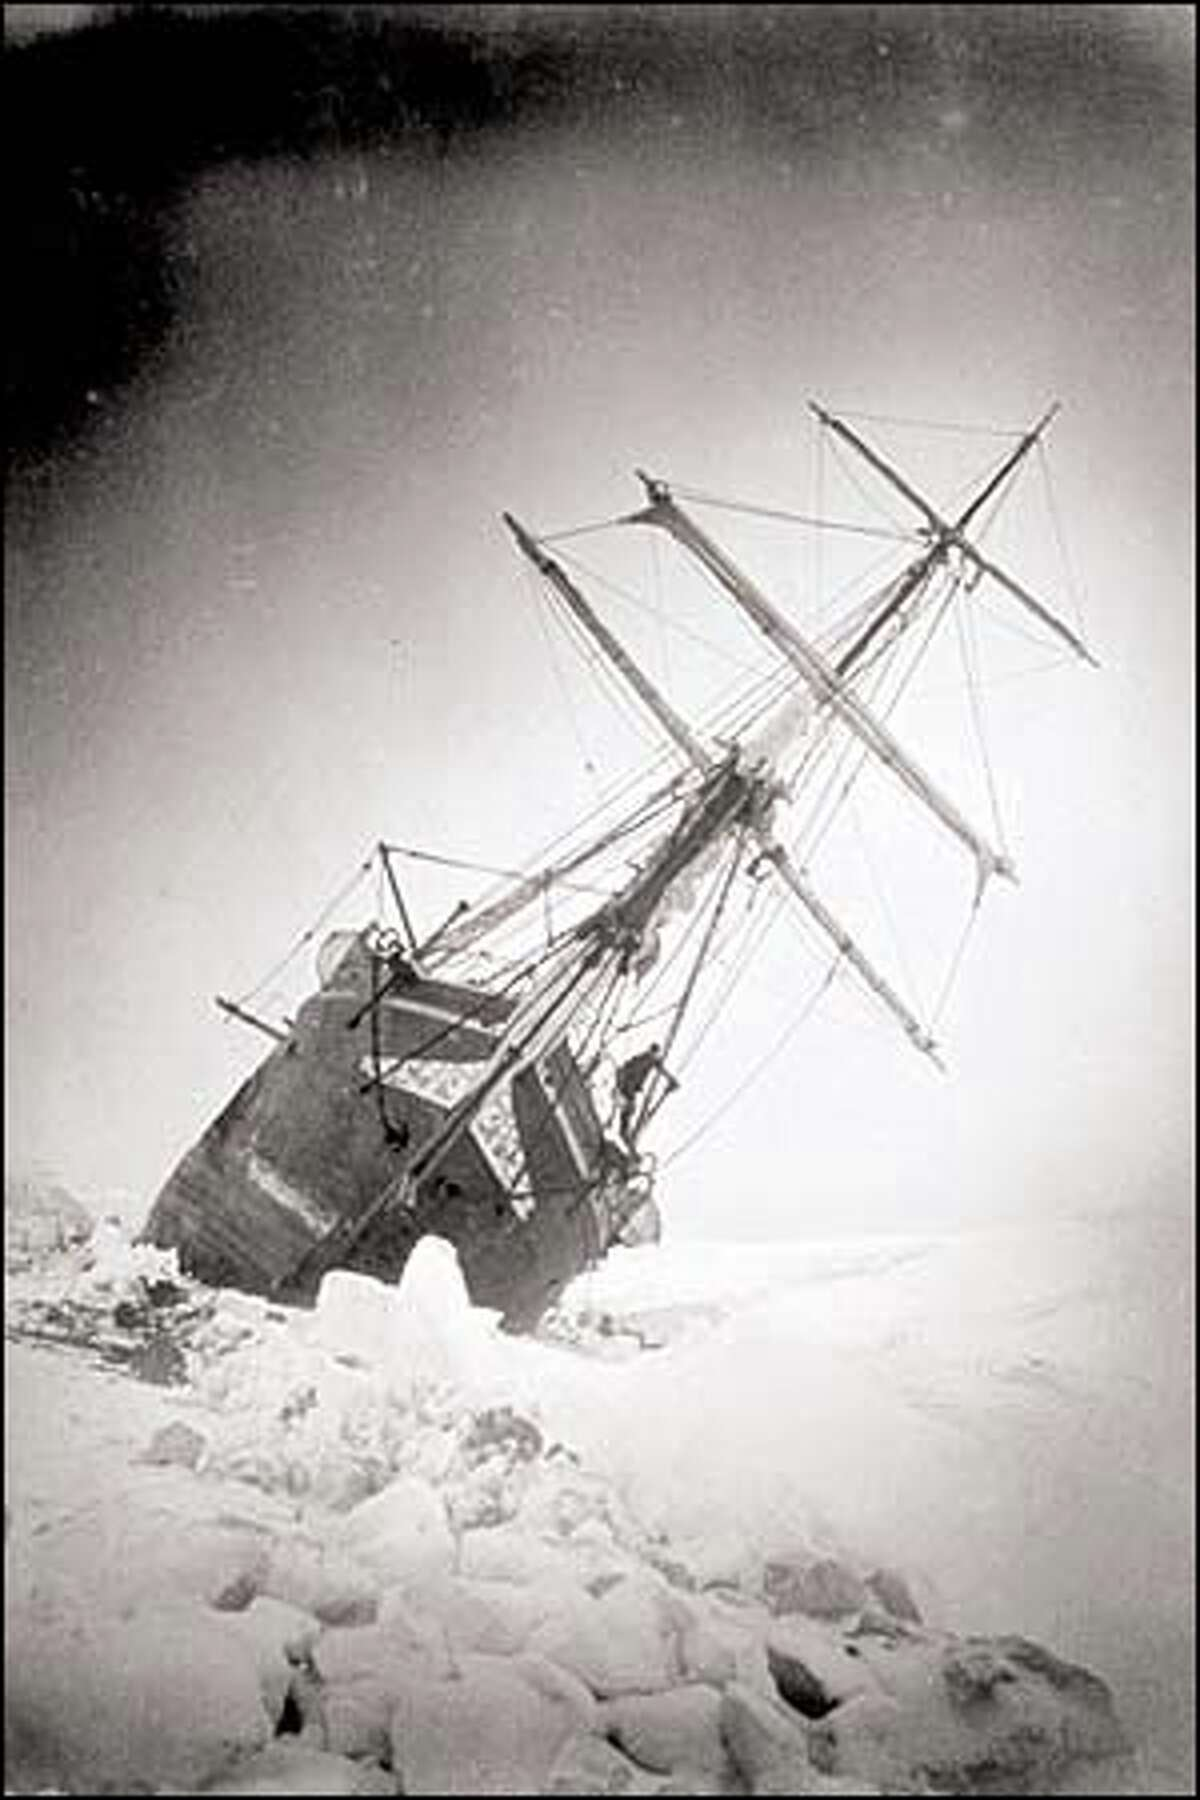 The Endurance keels over in pack ice and was later crushed by ice pressure. The expedition became a testament to human endurance and heroism. All 28 crew members survived almost two years in the frigid Antarctic before they were rescued by Shackleton.